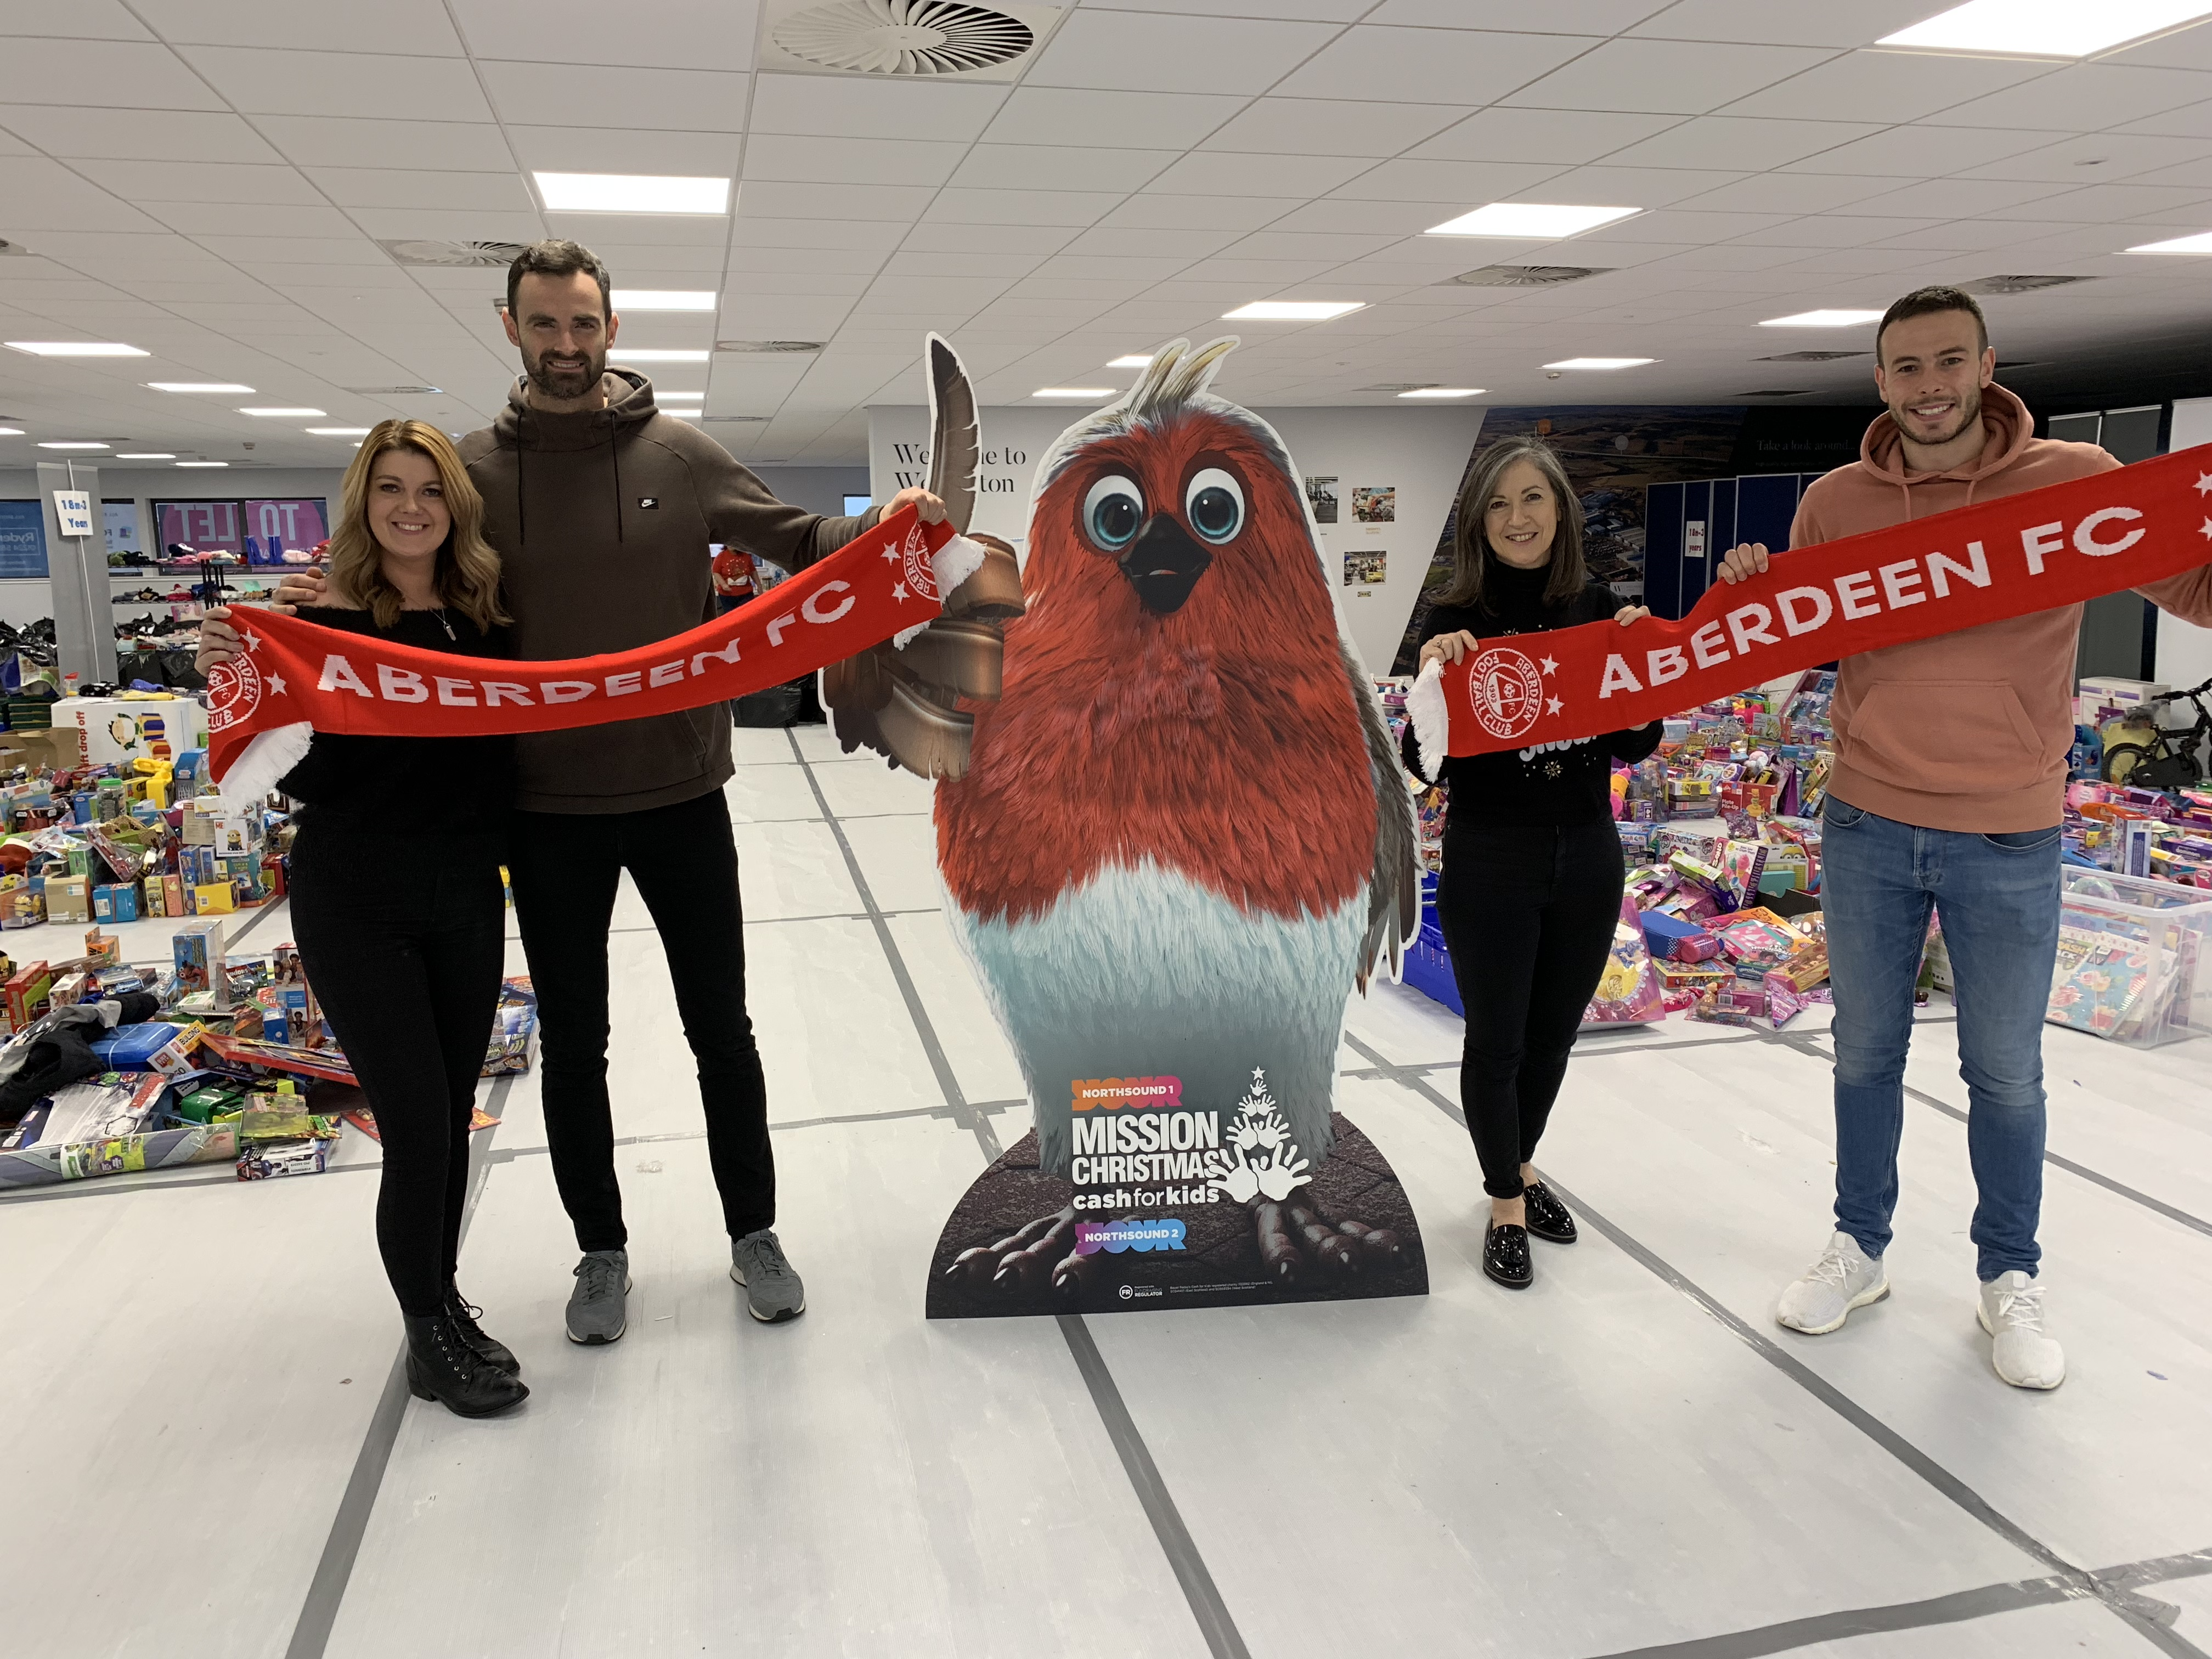 Joe Lewis and Andrew Considine have backed the Mission Christmas campaign.